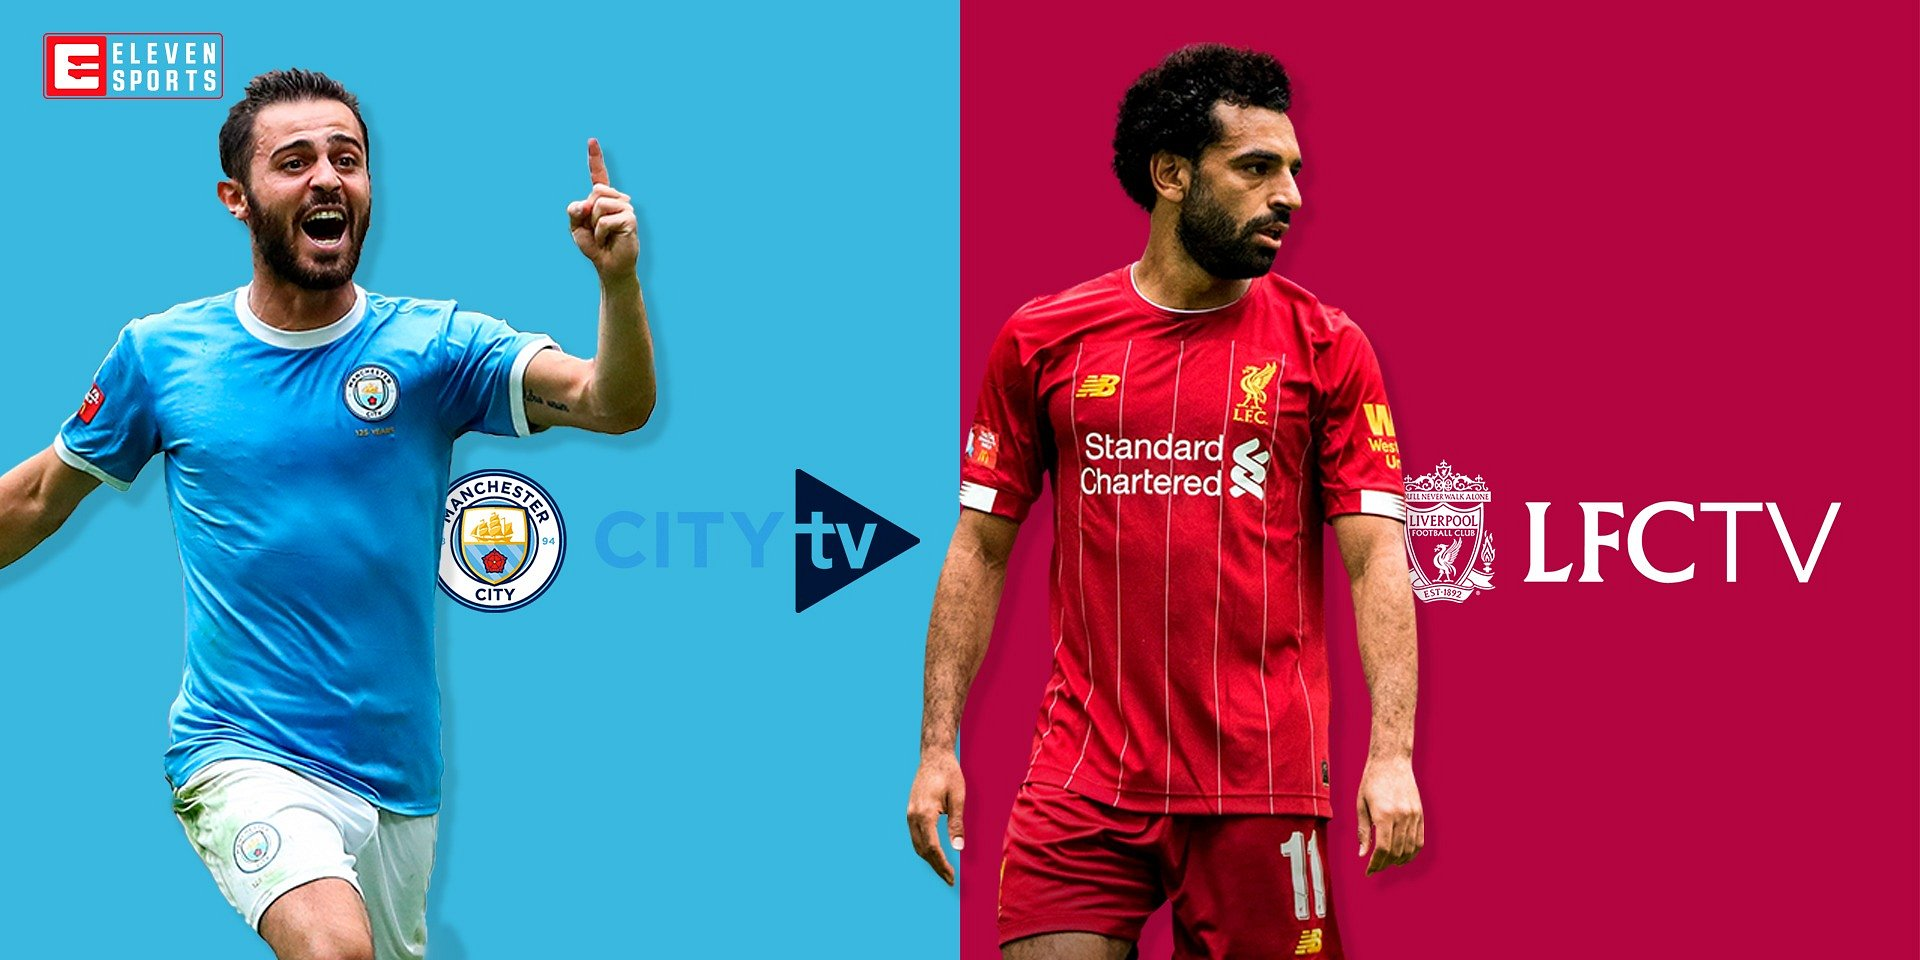 Manchester City TV e Liverpool TV chegam à Eleven Sports